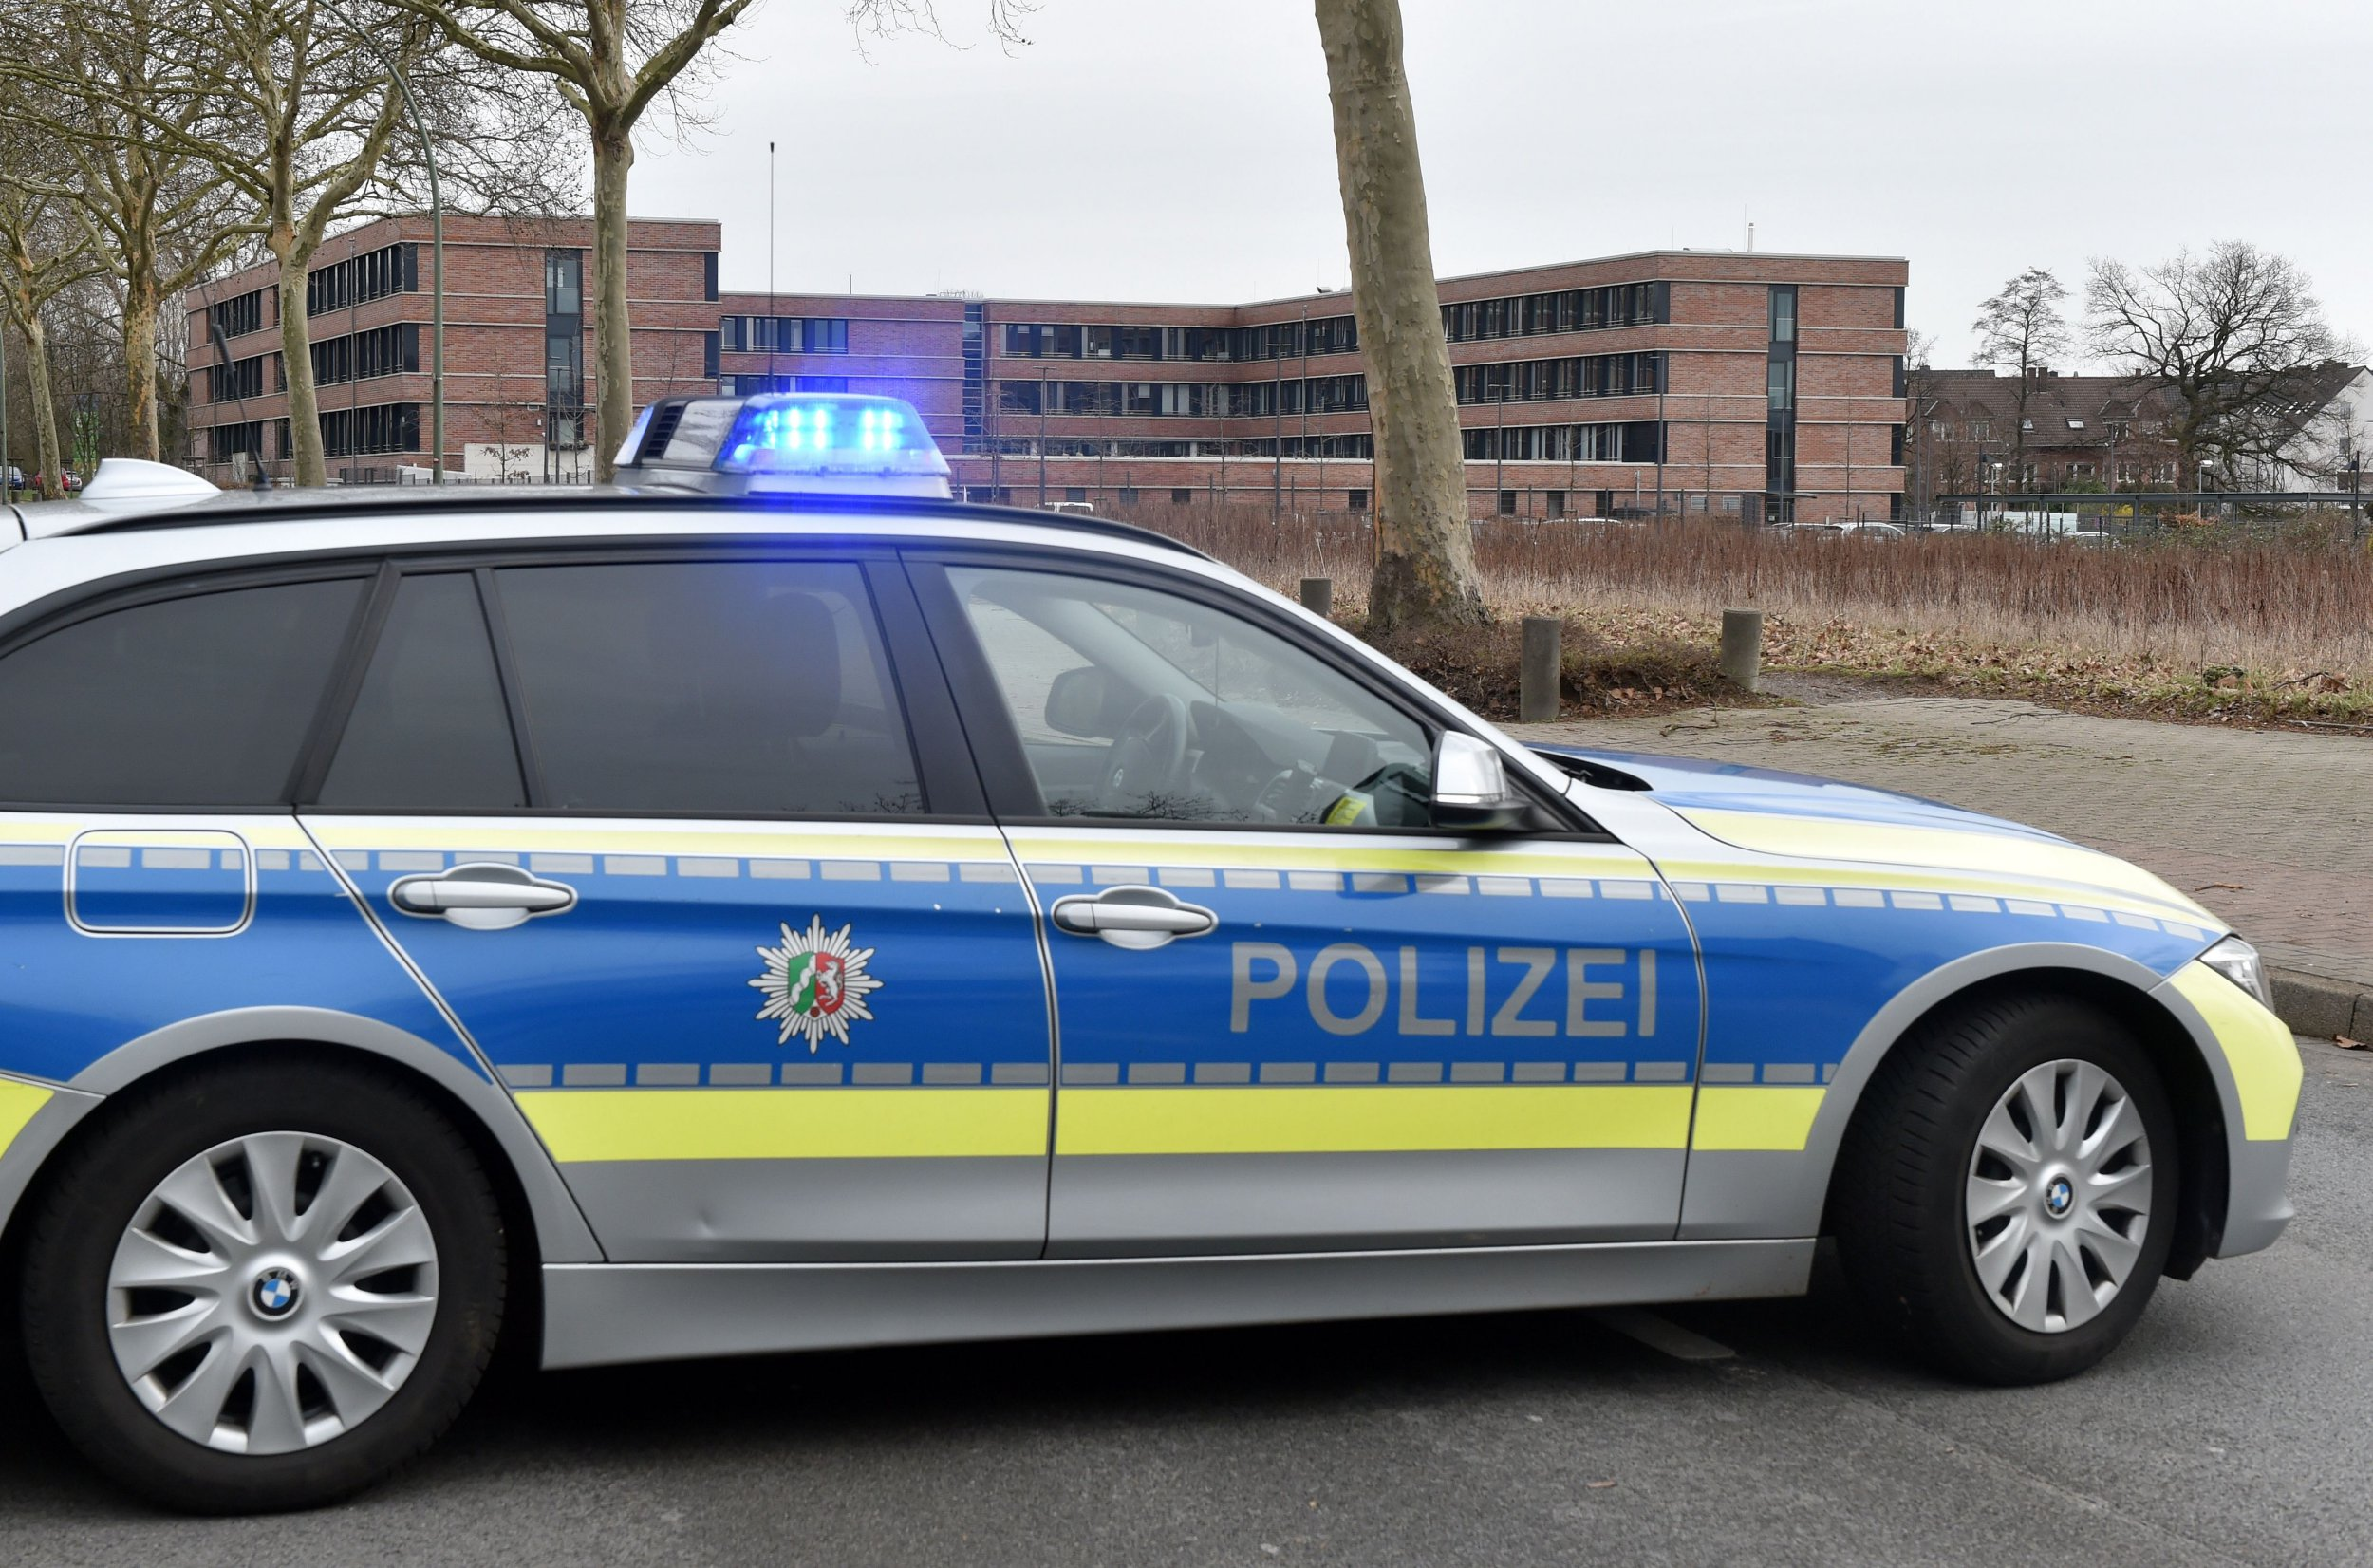 A picture taken on March 12, 2019 in Gelsenkirchen shows a German police car blocking the access to the tax office after its evacuation due to an email containing a bomb threat. - German authorities were on March 14, 2019 investigating over 100 threatening emails apparently sent by far-right sympathisers to lawyers, politicians, journalists and even a pop star. (Photo by Caroline Seidel / dpa / AFP) / Germany OUT (Photo credit should read CAROLINE SEIDEL/AFP/Getty Images)